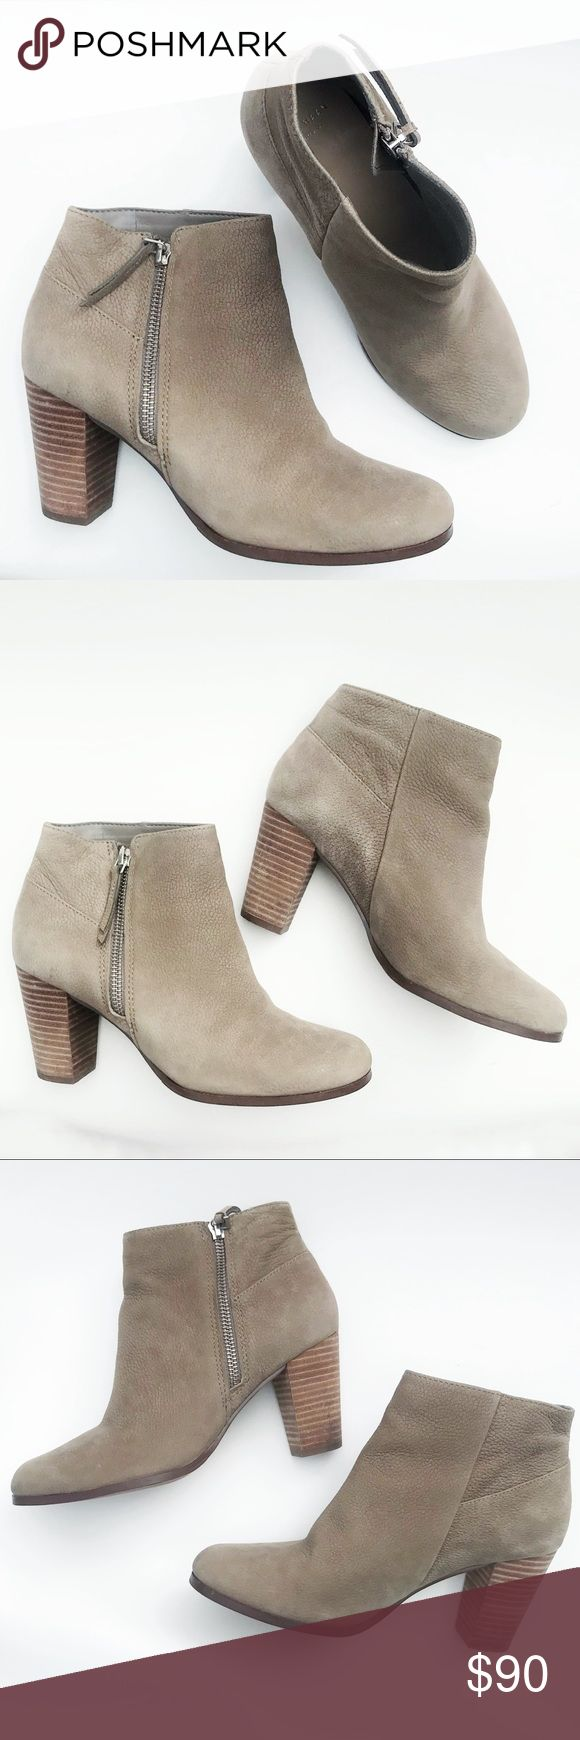 """COLE HAAN Taupe Pebbled Leather Ankle Boots, 6.5 DESCRIPTIONS: COLE HAAN Taupe Pebbled Leather Ankle Boots, Women's 6.5 - Taupe pebbled Leather - Grand os  - Ankle Boots - Side zipper closure - Wooden stack heel - Leather upper - Balance man made  MEASUREMENTS: - 3"""" Heel - 5"""" Shaft  CONDITIONS:  - Great condition Cole Haan Shoes Ankle Boots & Booties"""